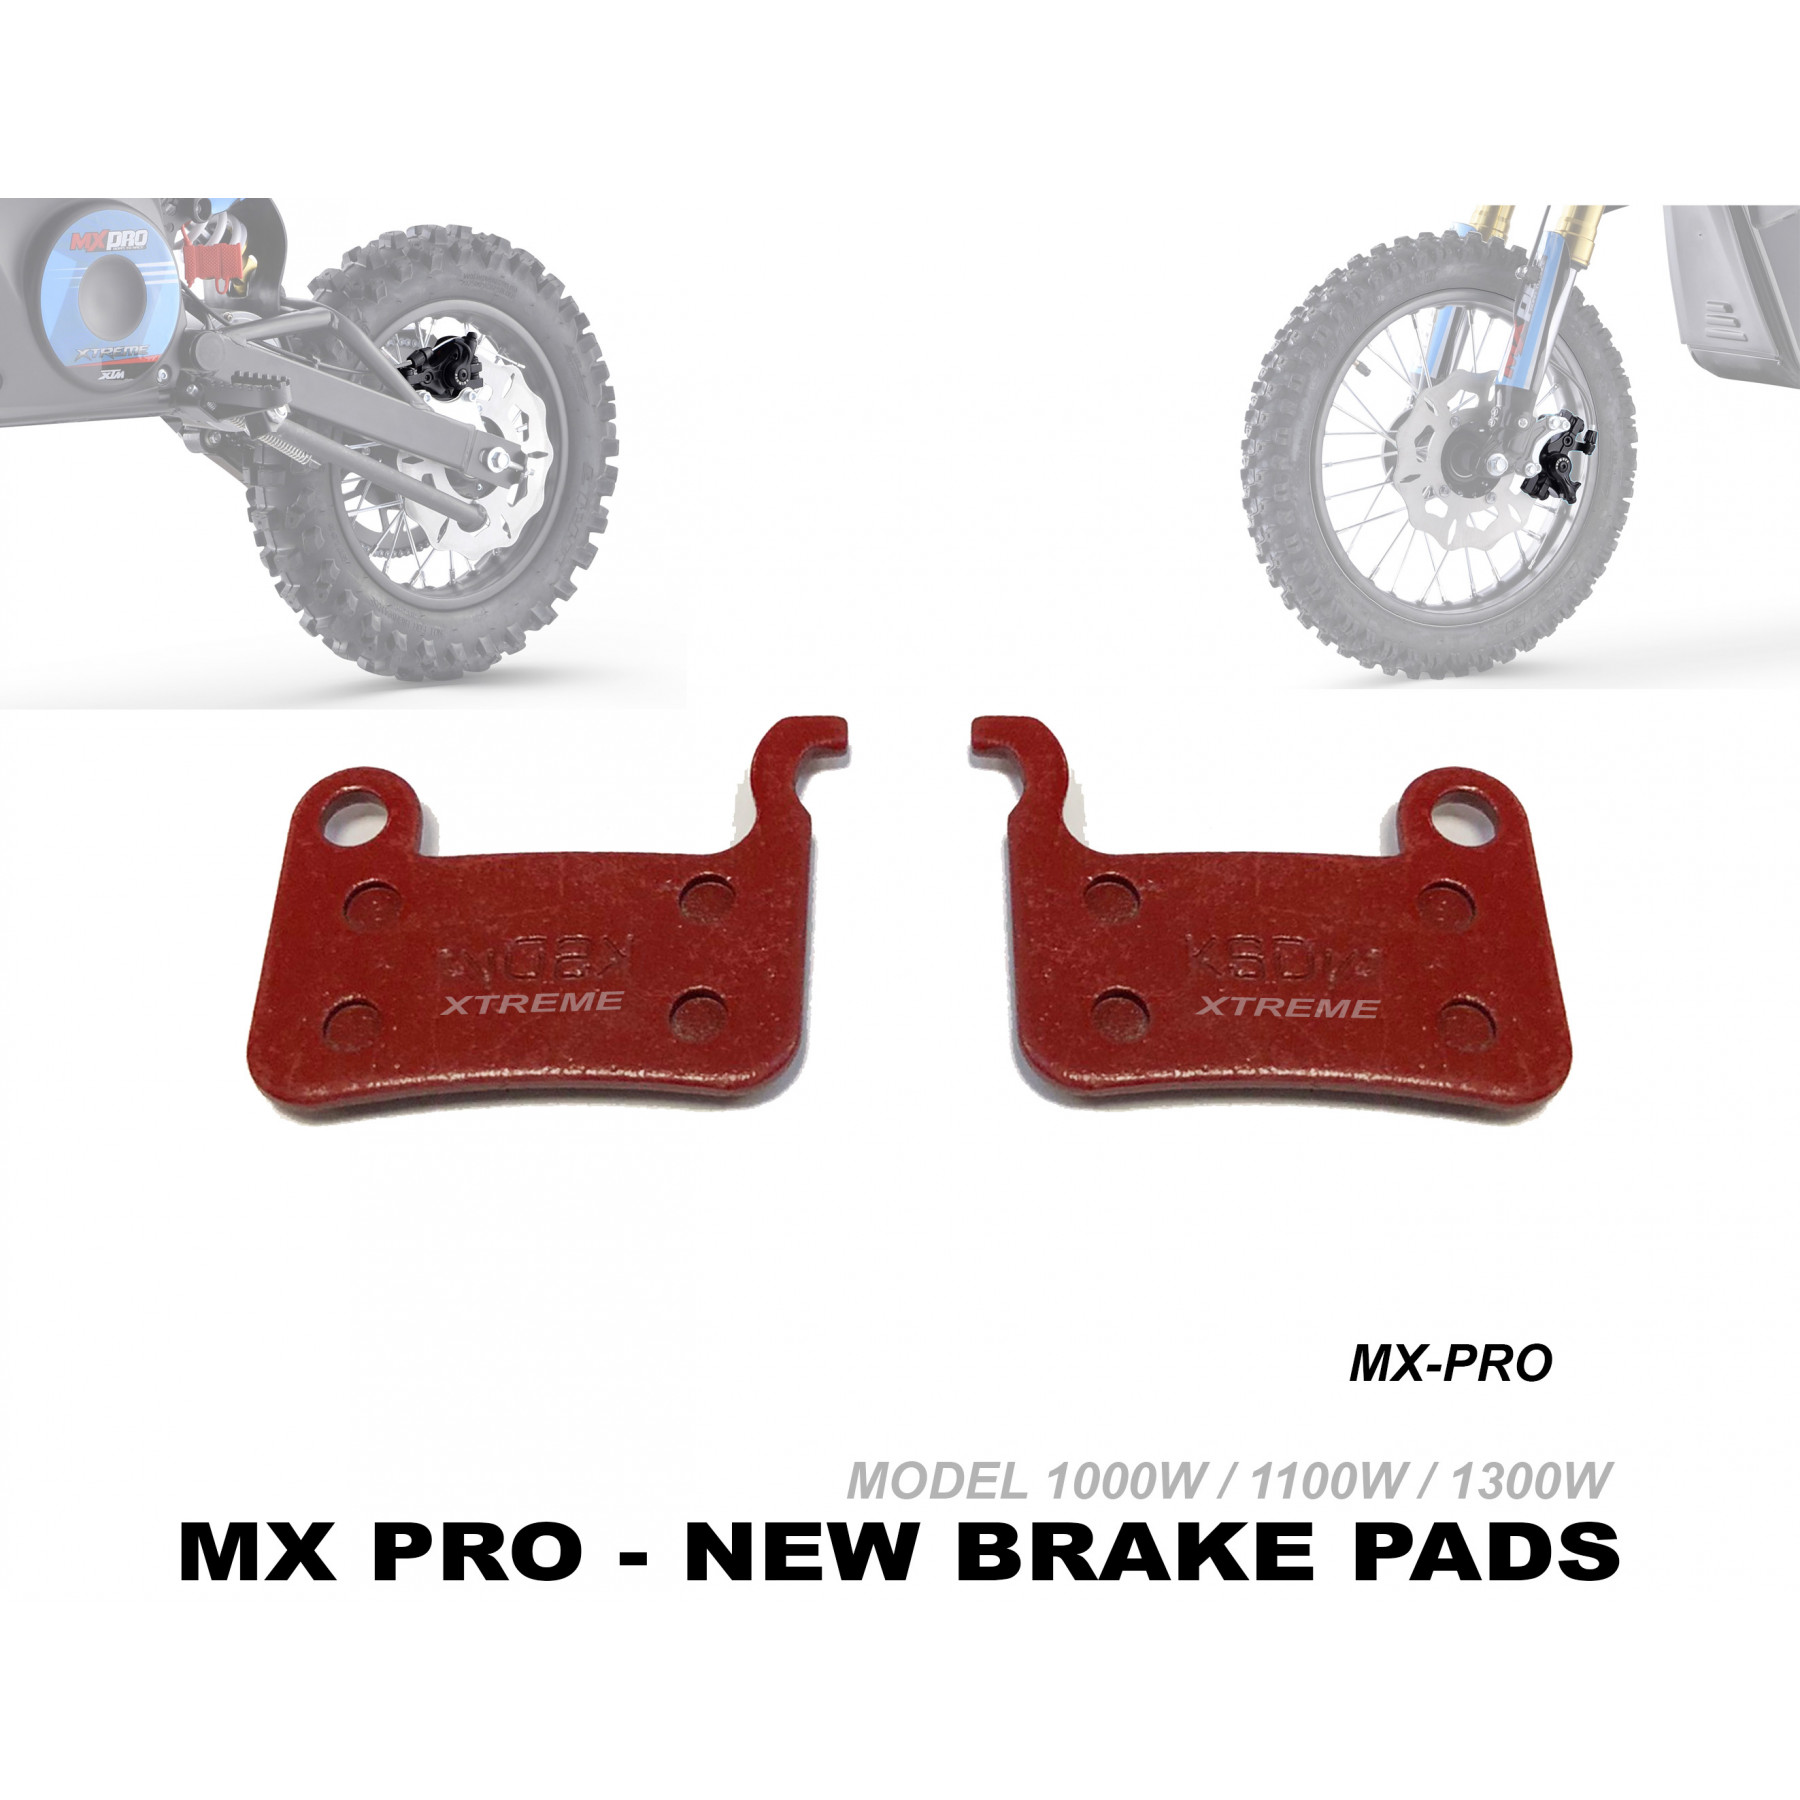 XTREME ELECTRIC XTM MX-PRO 36V REPLACEMENT FRONT AND REAR BRAKE PADS